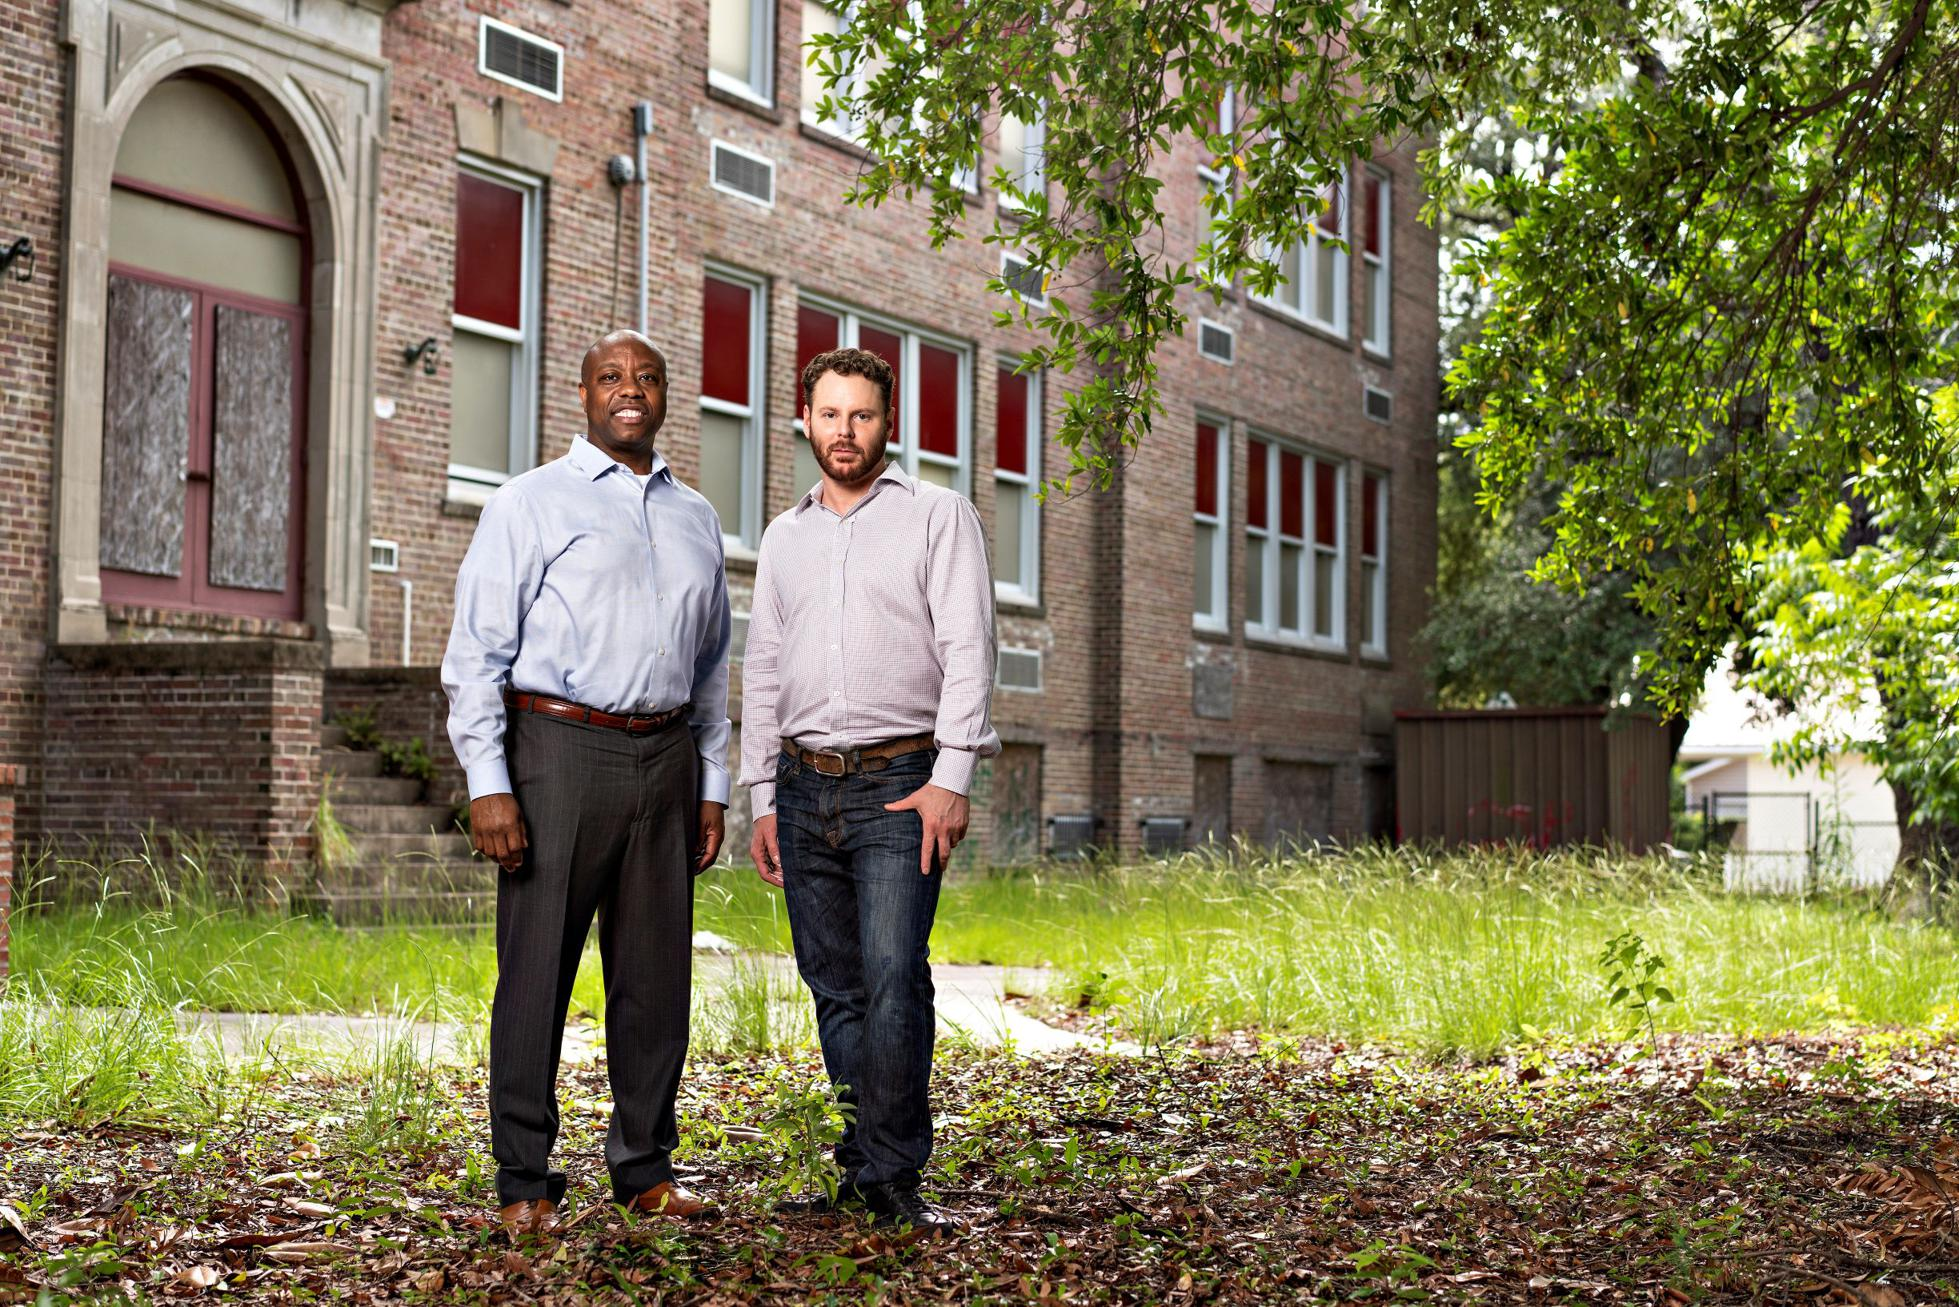 Sen. Tim Scott (R-SC) and Sean Parker tour the senator's childhood neighborhood as an example of the areas that can see investment through the opportunity zone program.